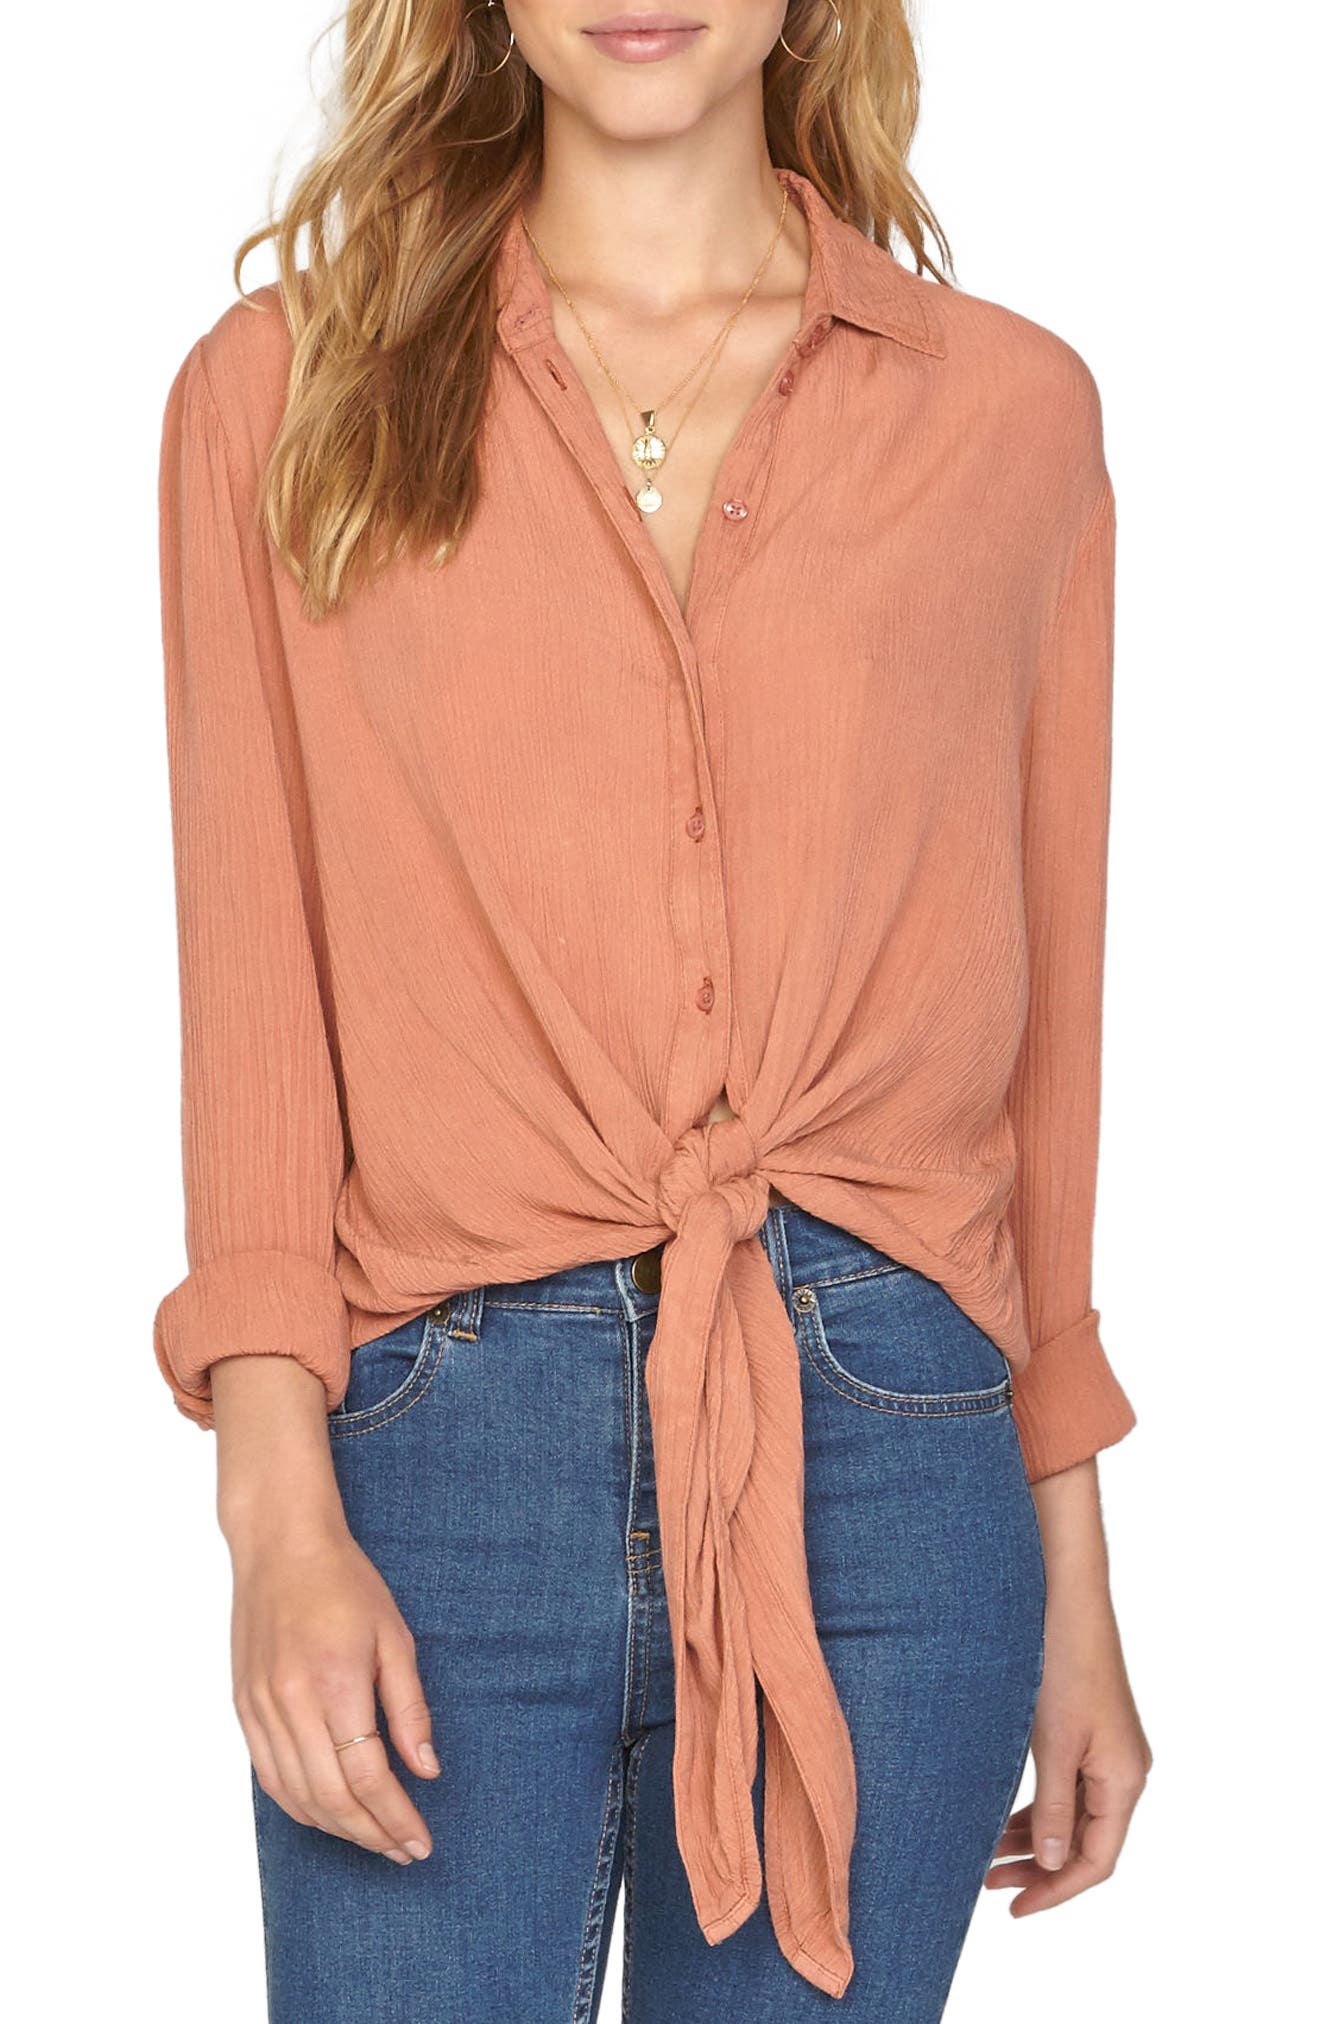 C'est La Vie Knotted Shirt,                         Main,                         color, Rose Dawn